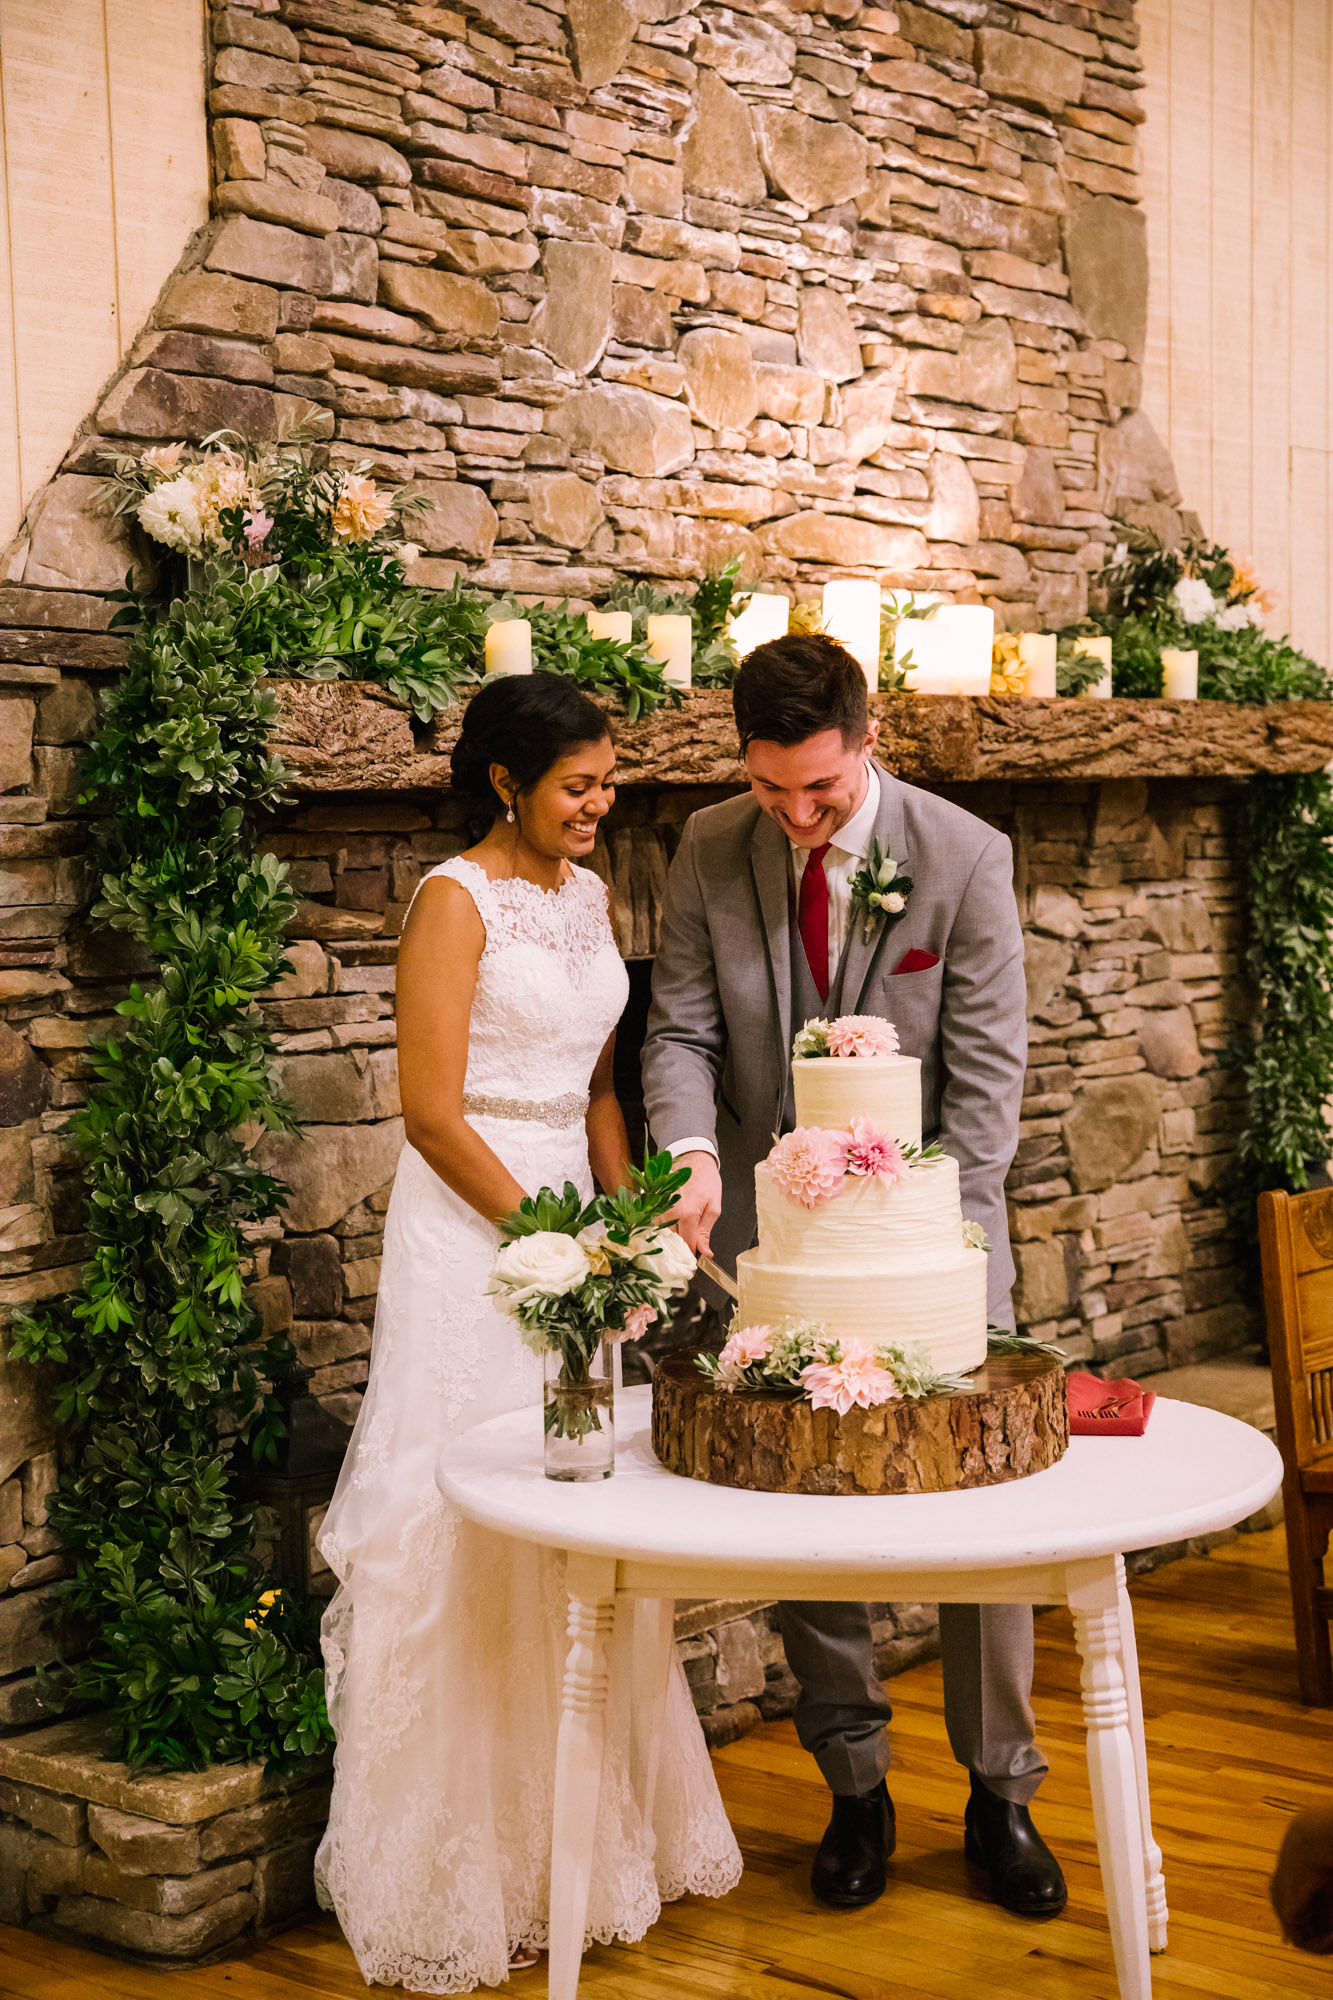 Waynesville NC Wedding Photography | Bride and Groom Cut Cake Full Body